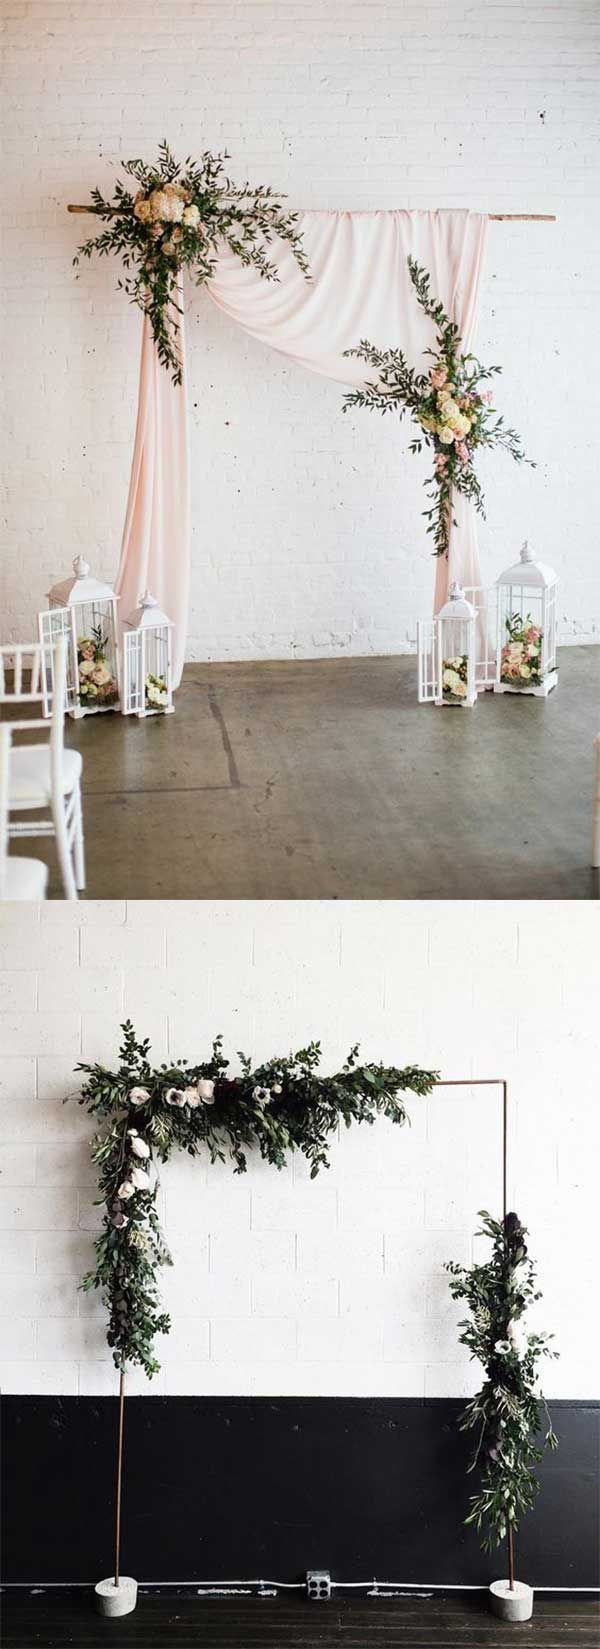 100 BEST FLORAL RUSTIC WEDDING DAYS & BOW DECORATION IDEAS FOR 2018 SPRING ... cheap wedding decorations